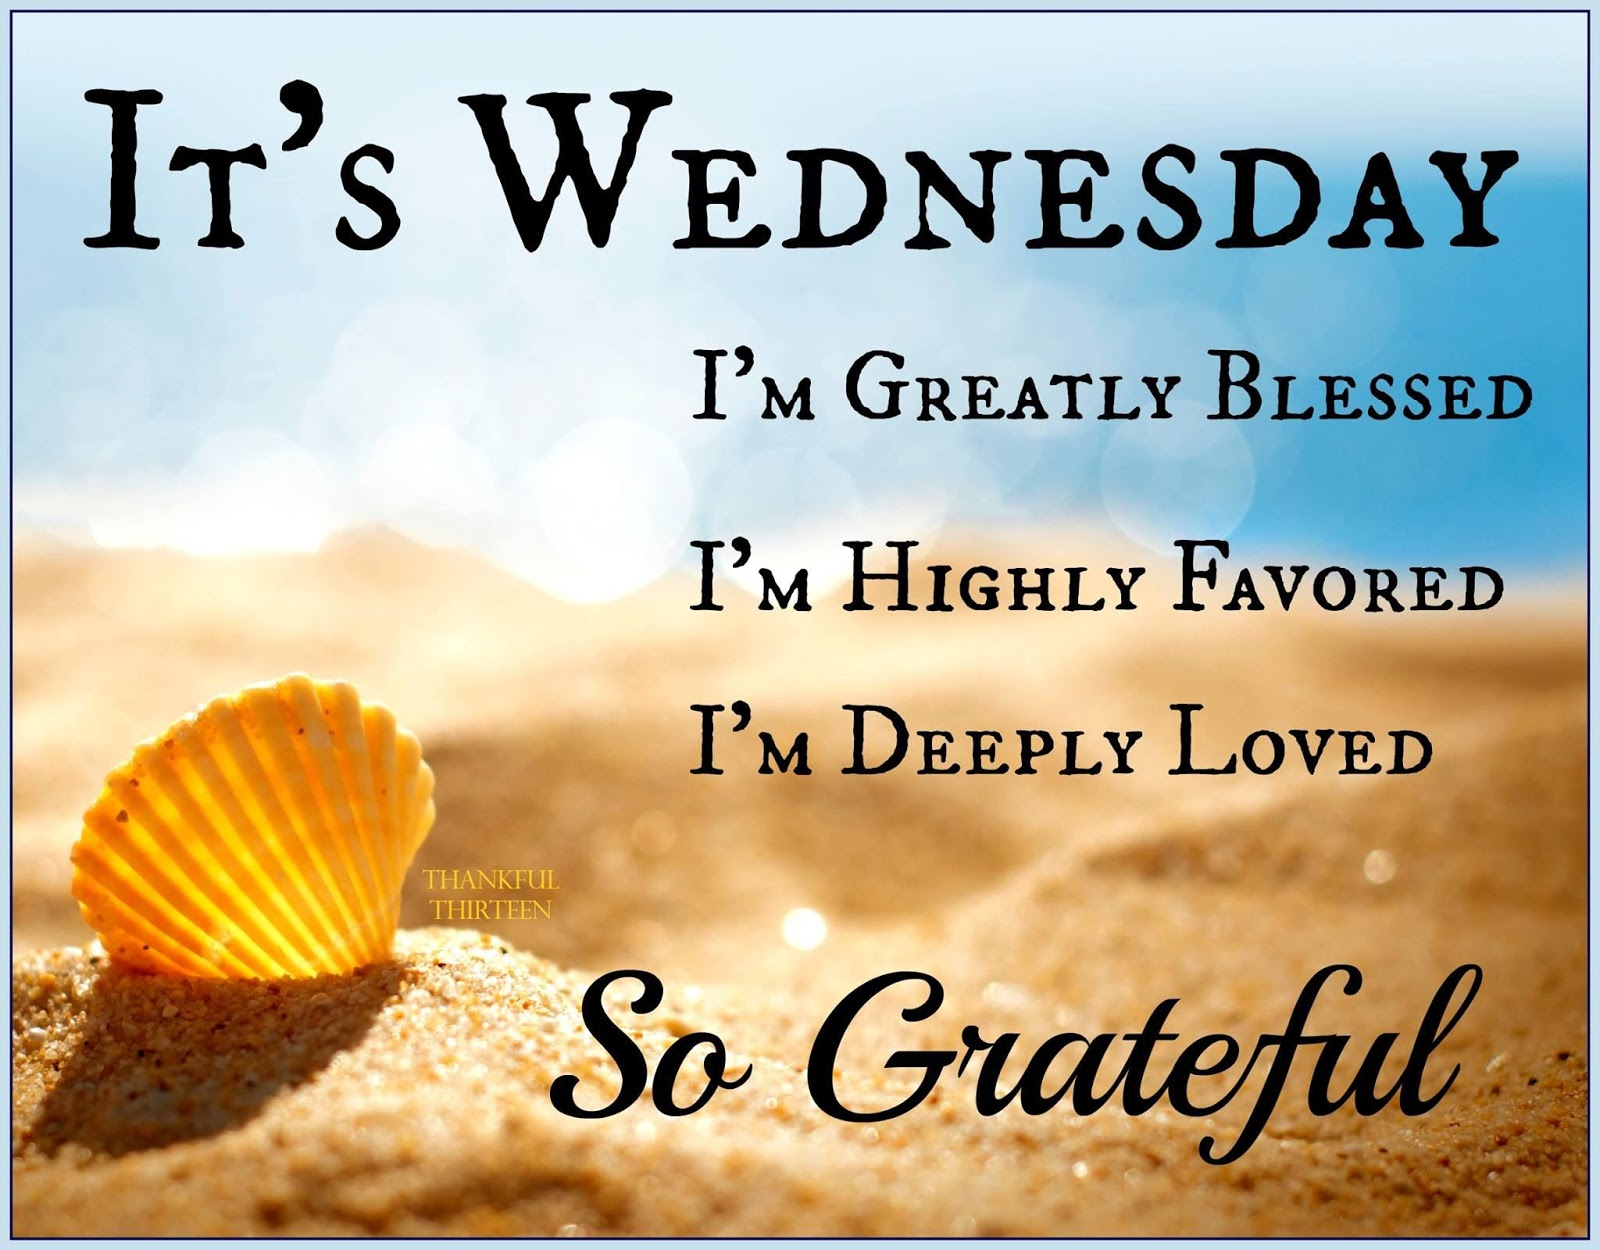 It Wednesday Grateful Monday Morning Liners